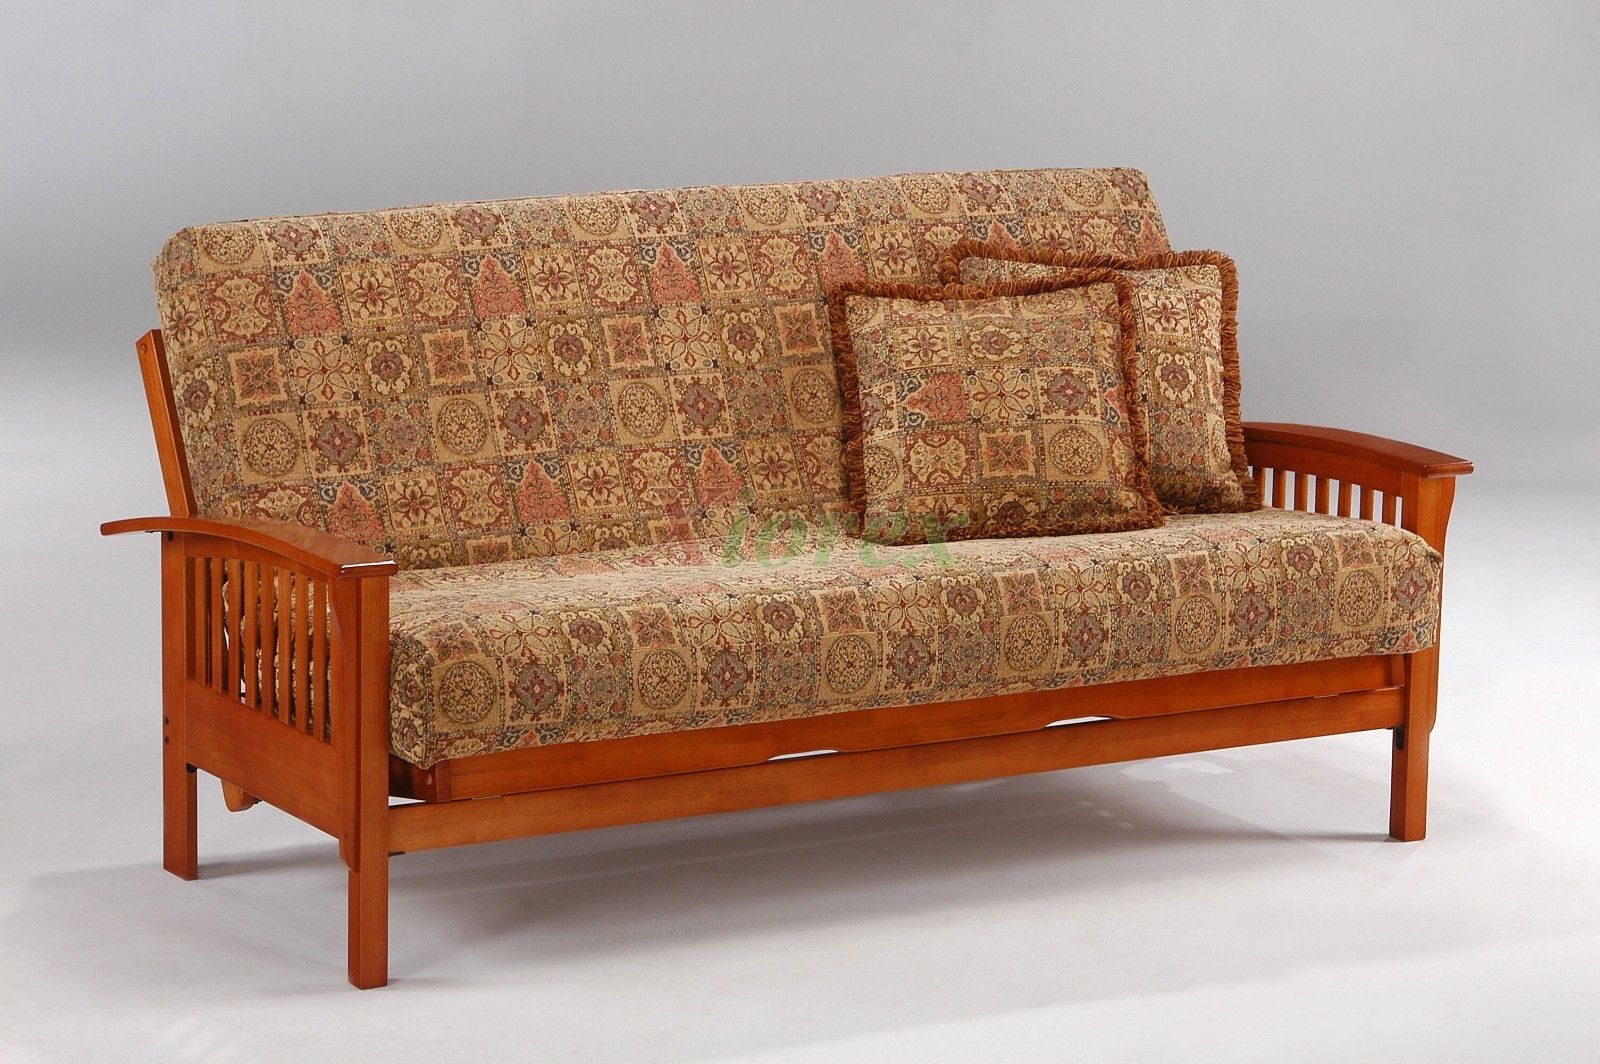 Day And Night Winchester Futon Beds In Teak Xiorex Futons Online